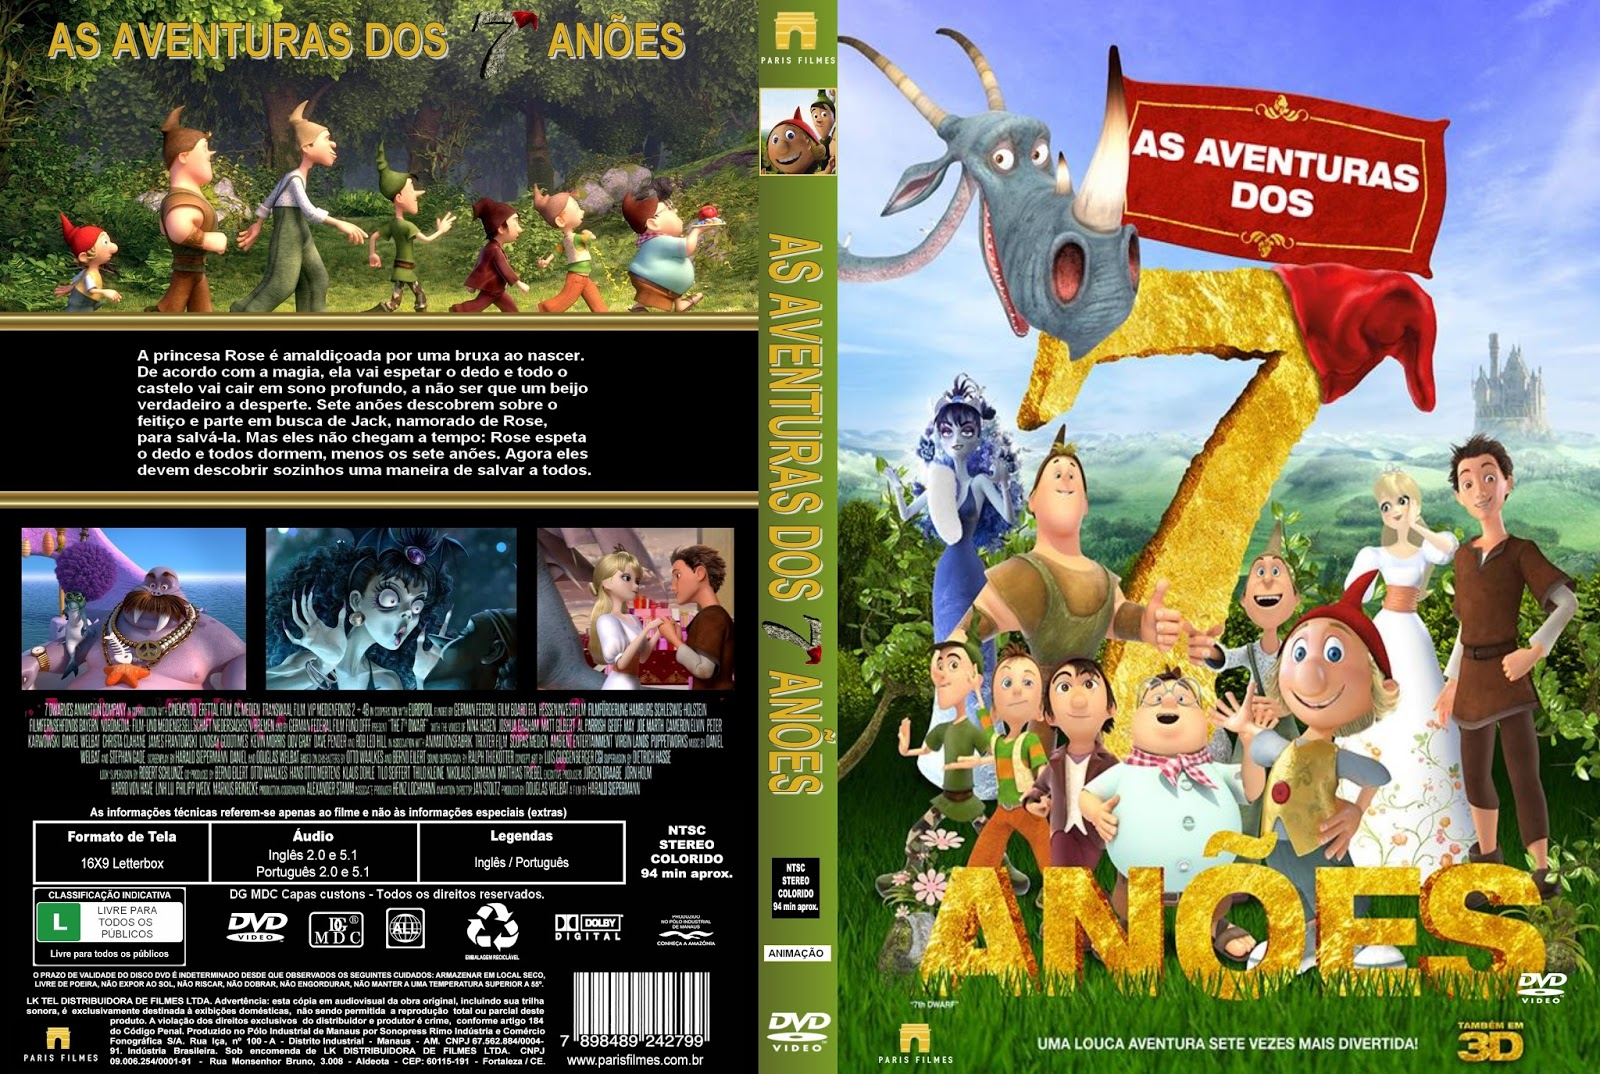 Download As Aventuras Dos 7 Anões DVDRip XviD Dual Áudio As Aventuras Dos Sete An 25C3 25B5es